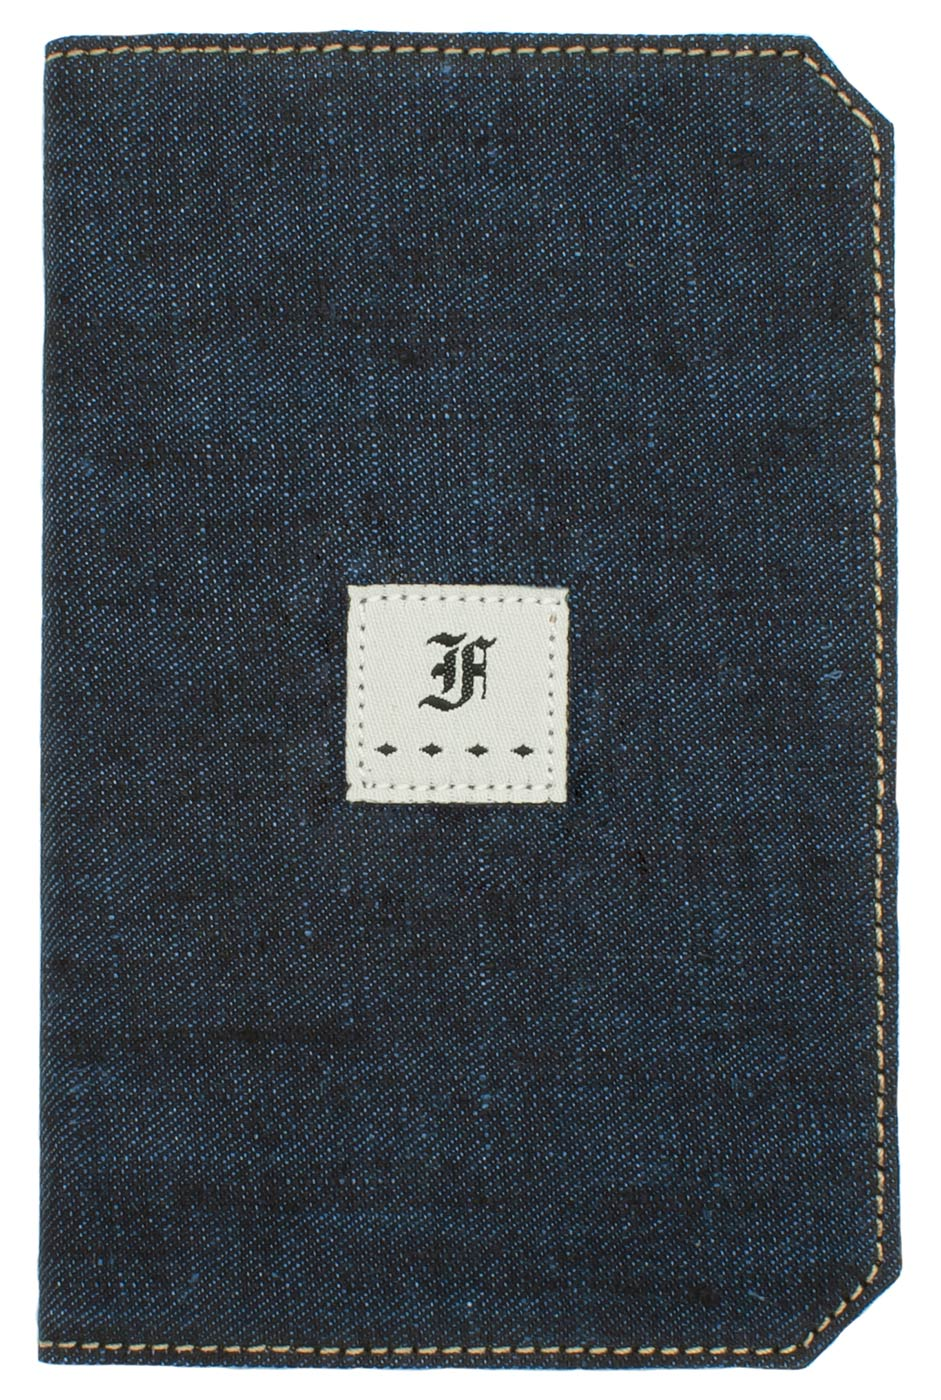 Franklin Christoph 5.3 Pocket Notebook Cover - Blue Linen